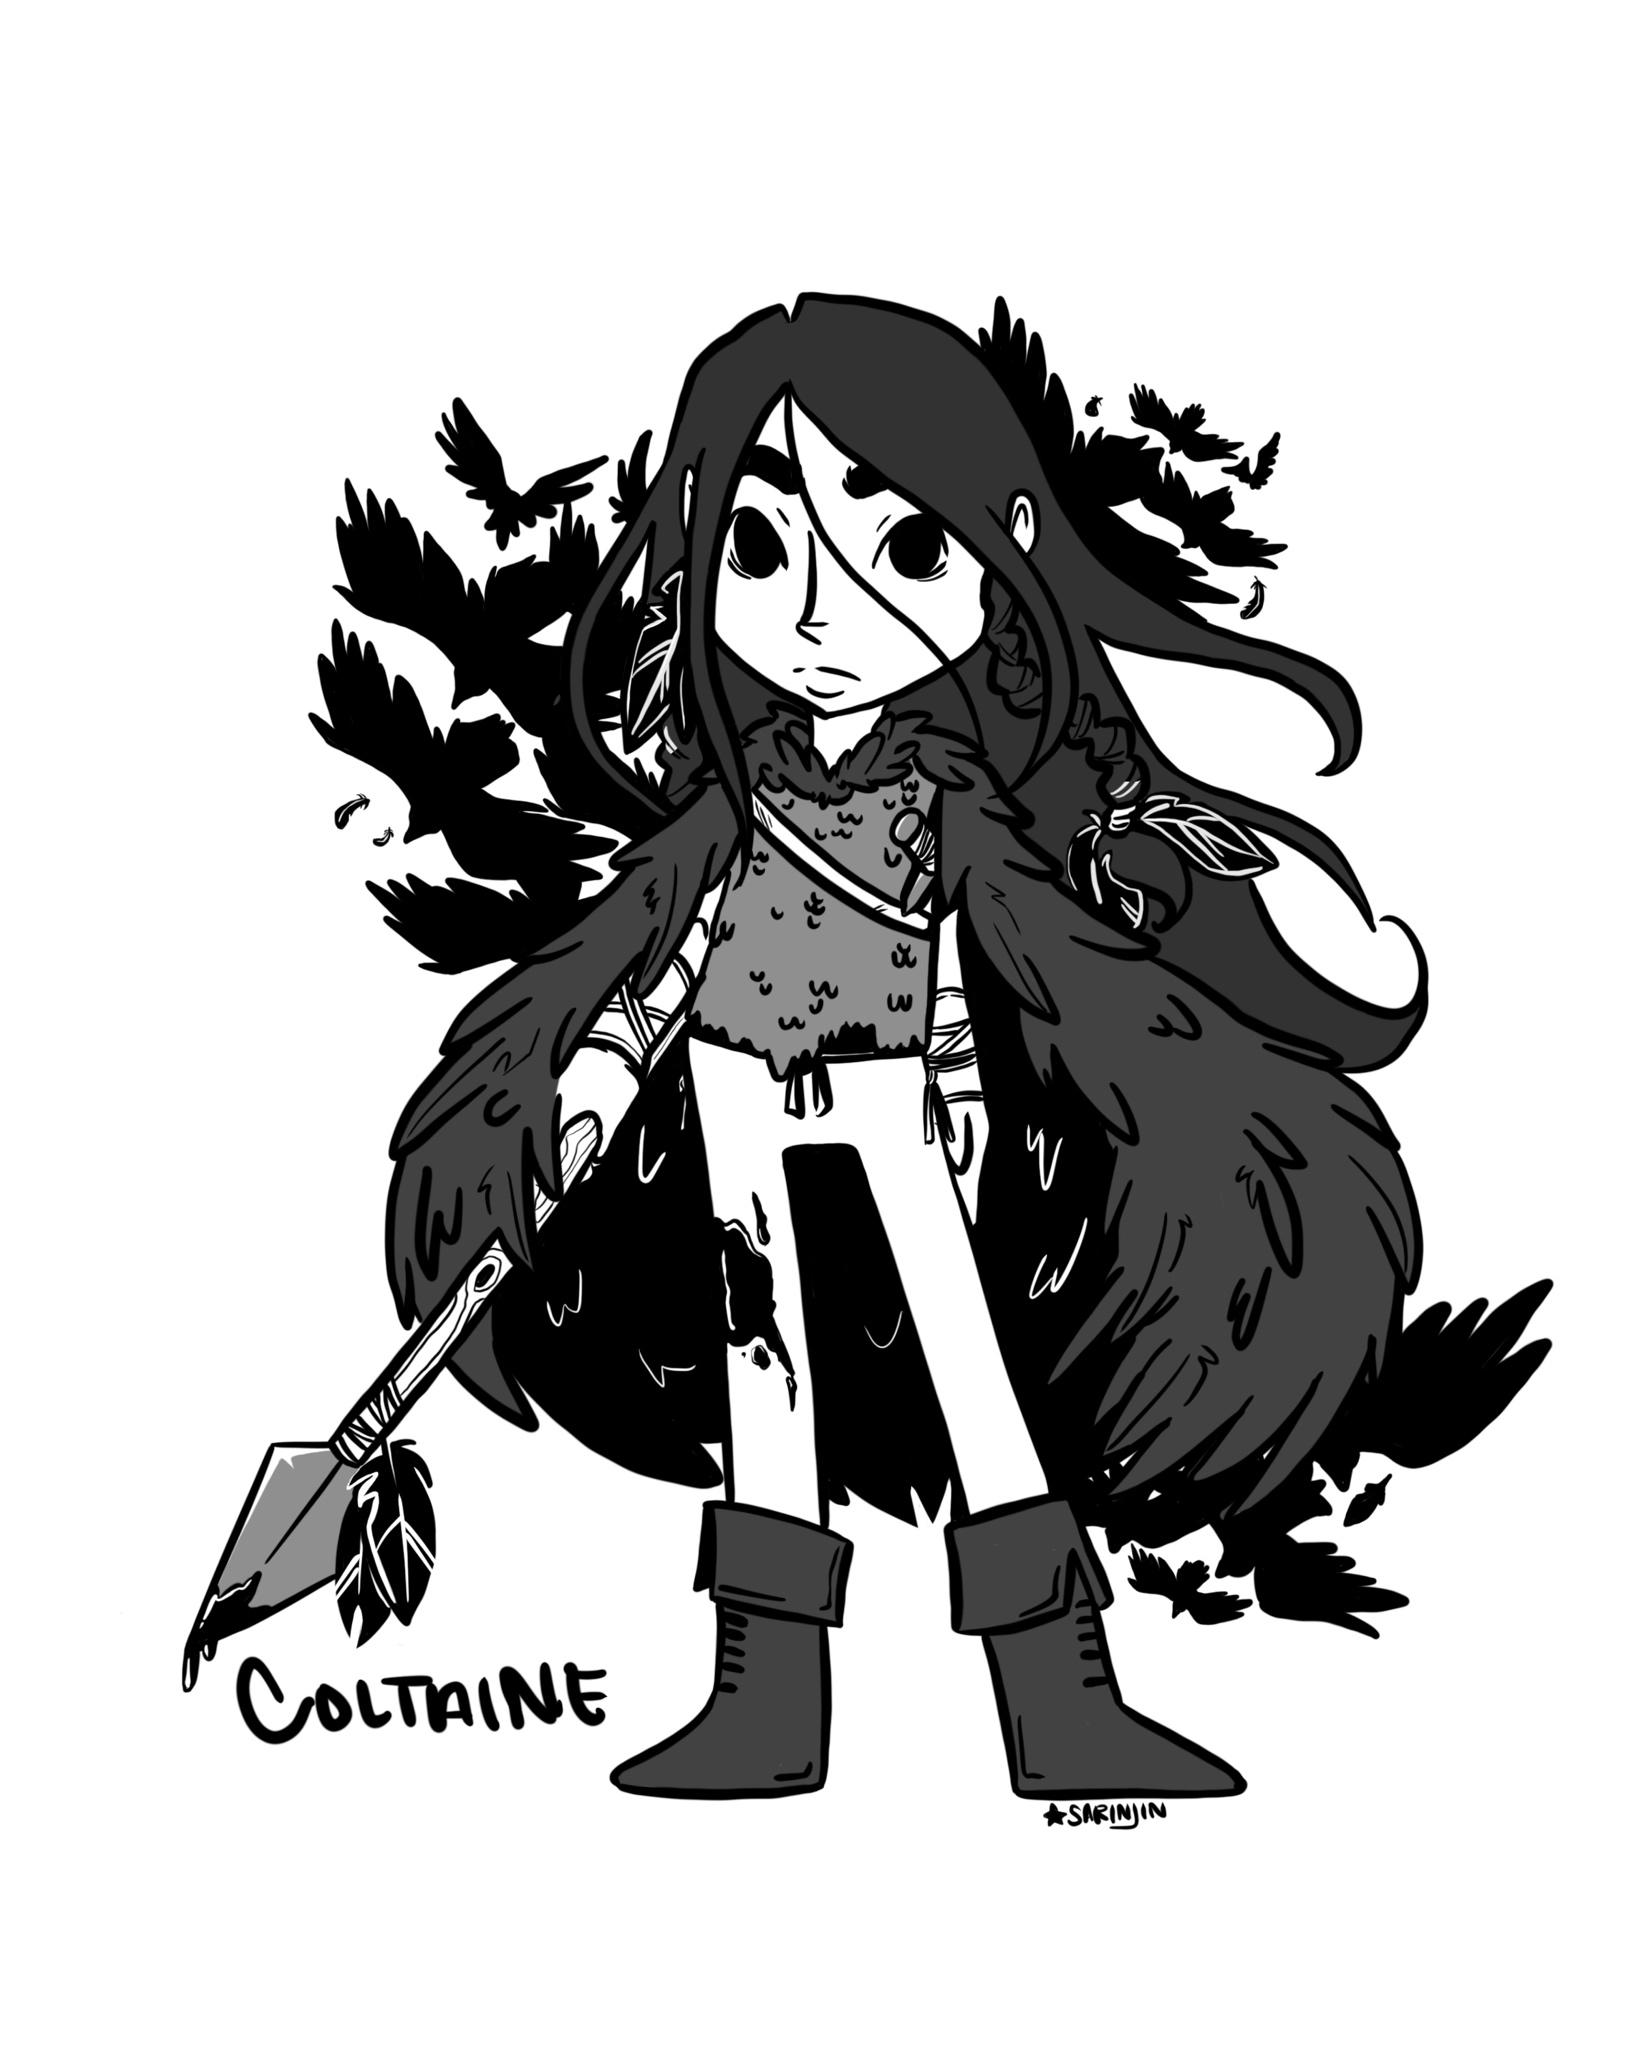 Coltaine by Sarinjin.jpg